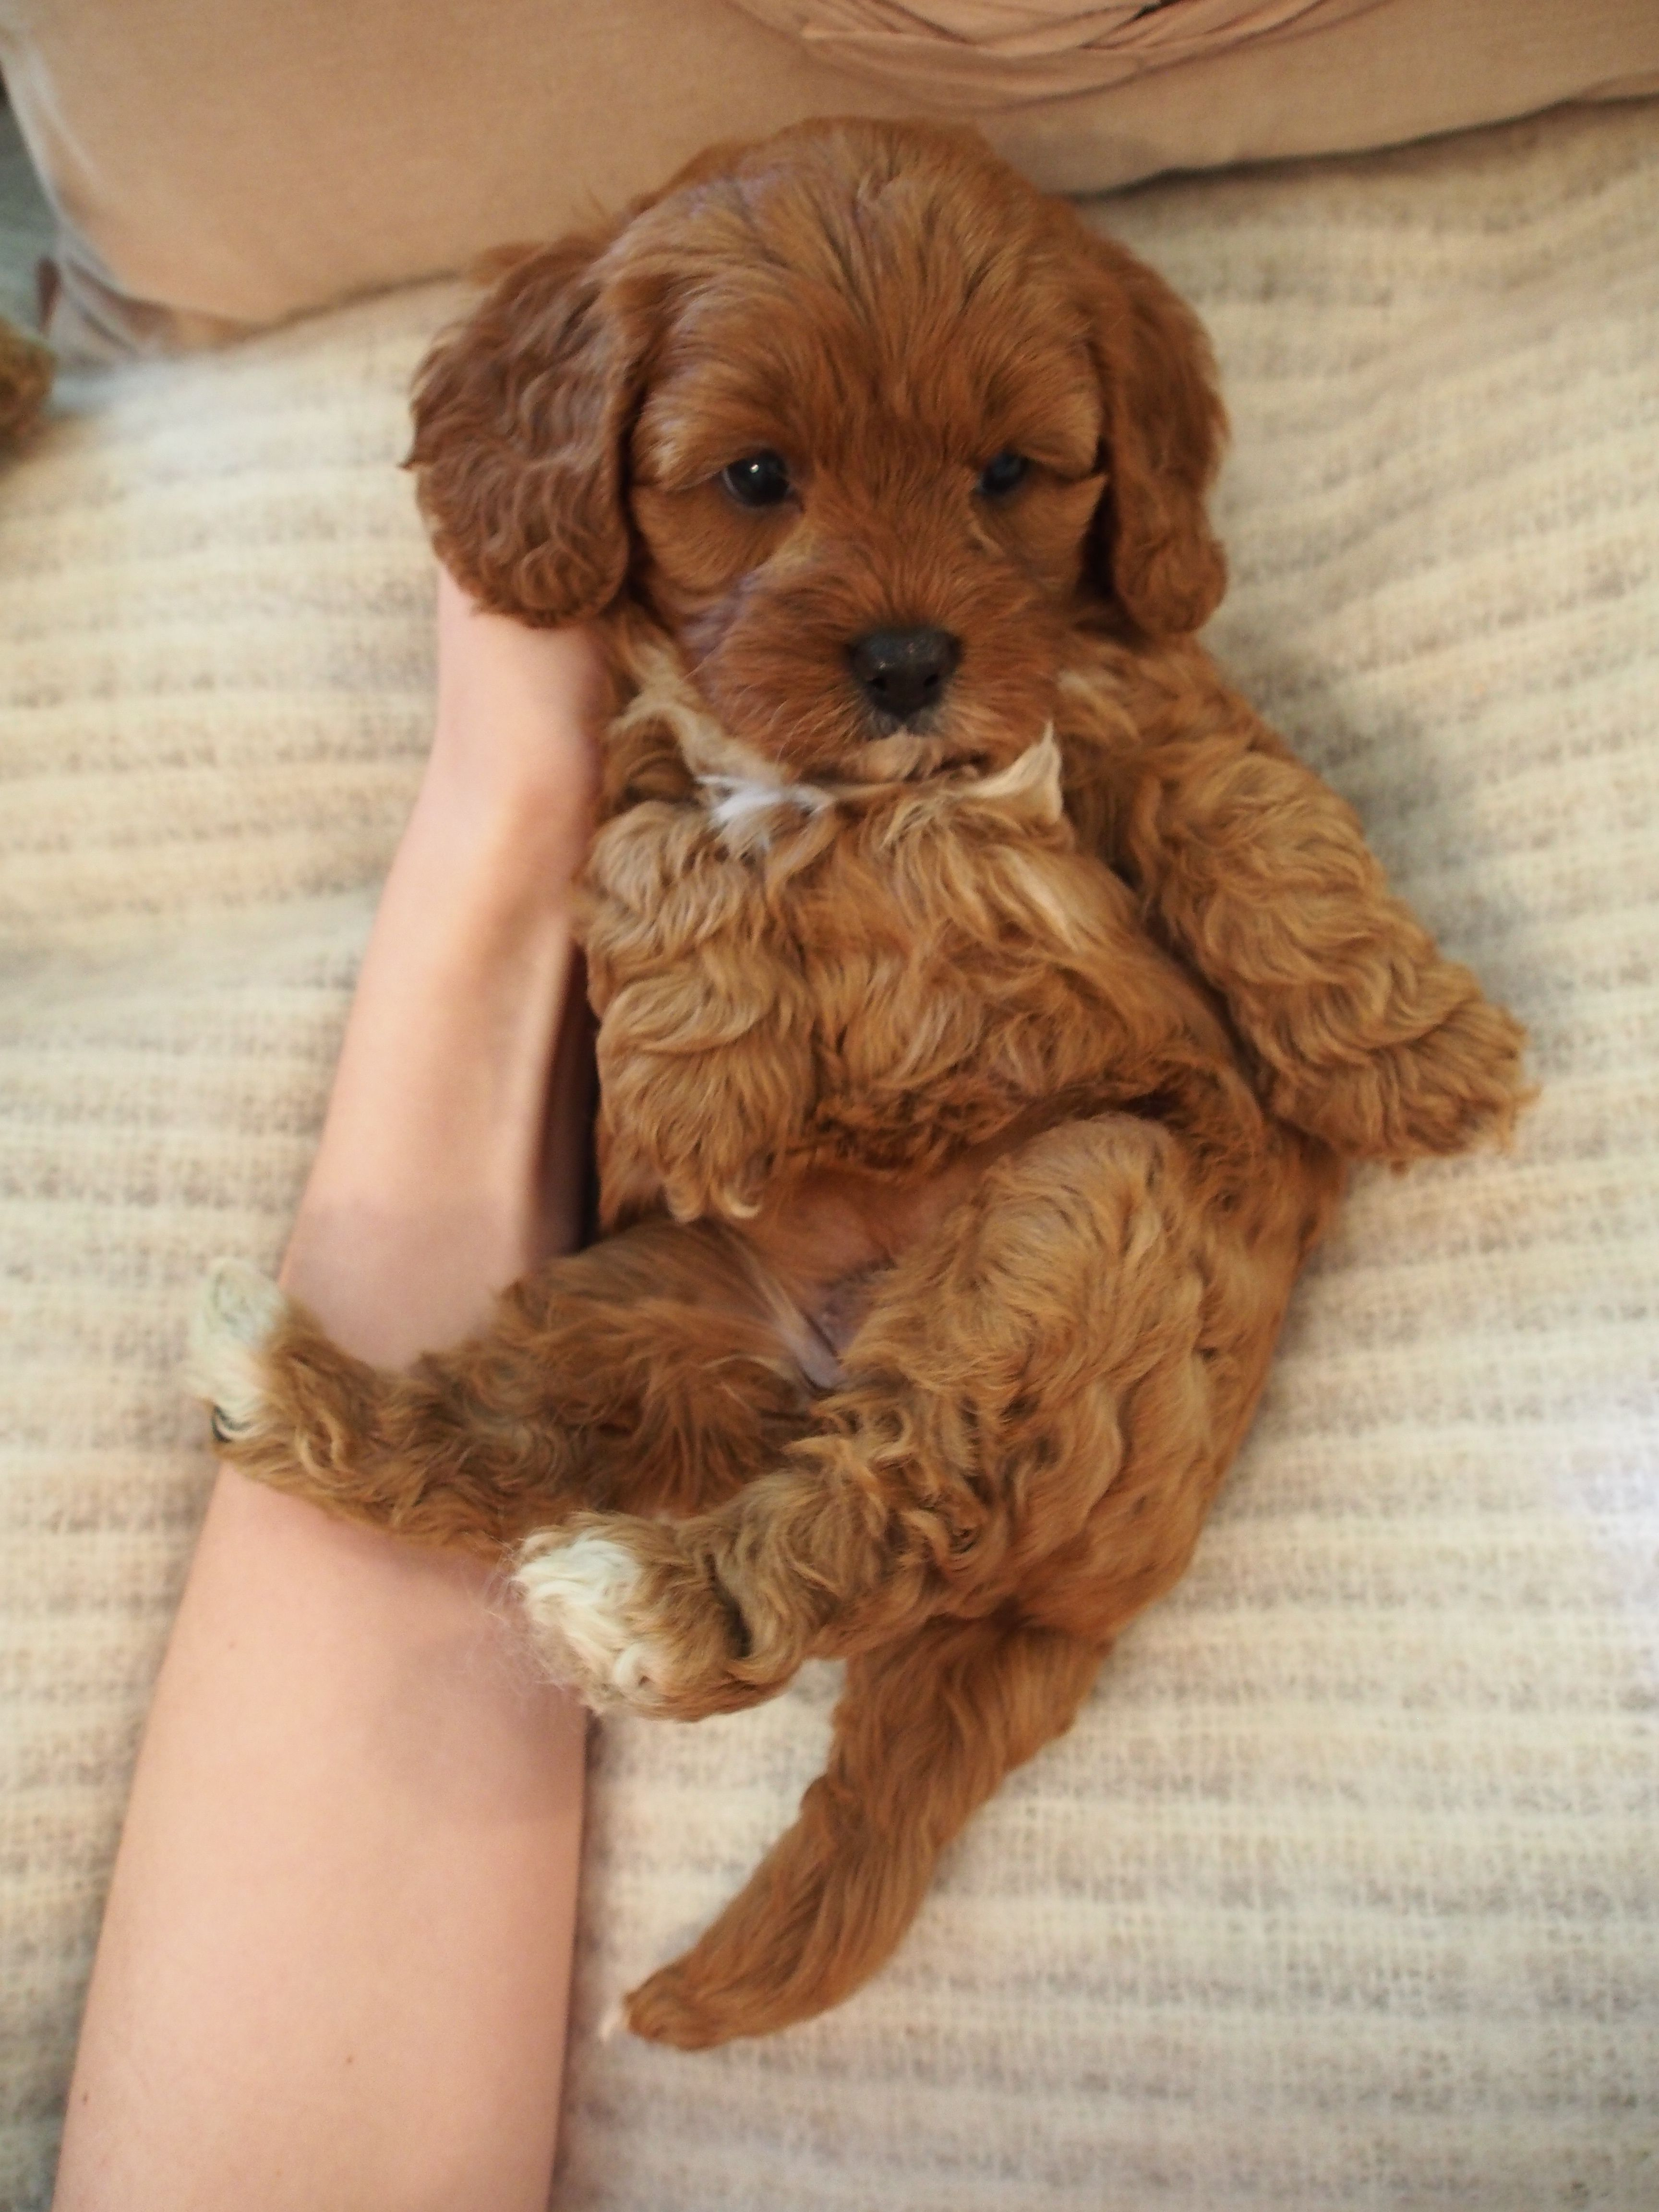 Lavender S Red Girl Cavapoopuppies Cute Puppies Puppies Cute Baby Animals